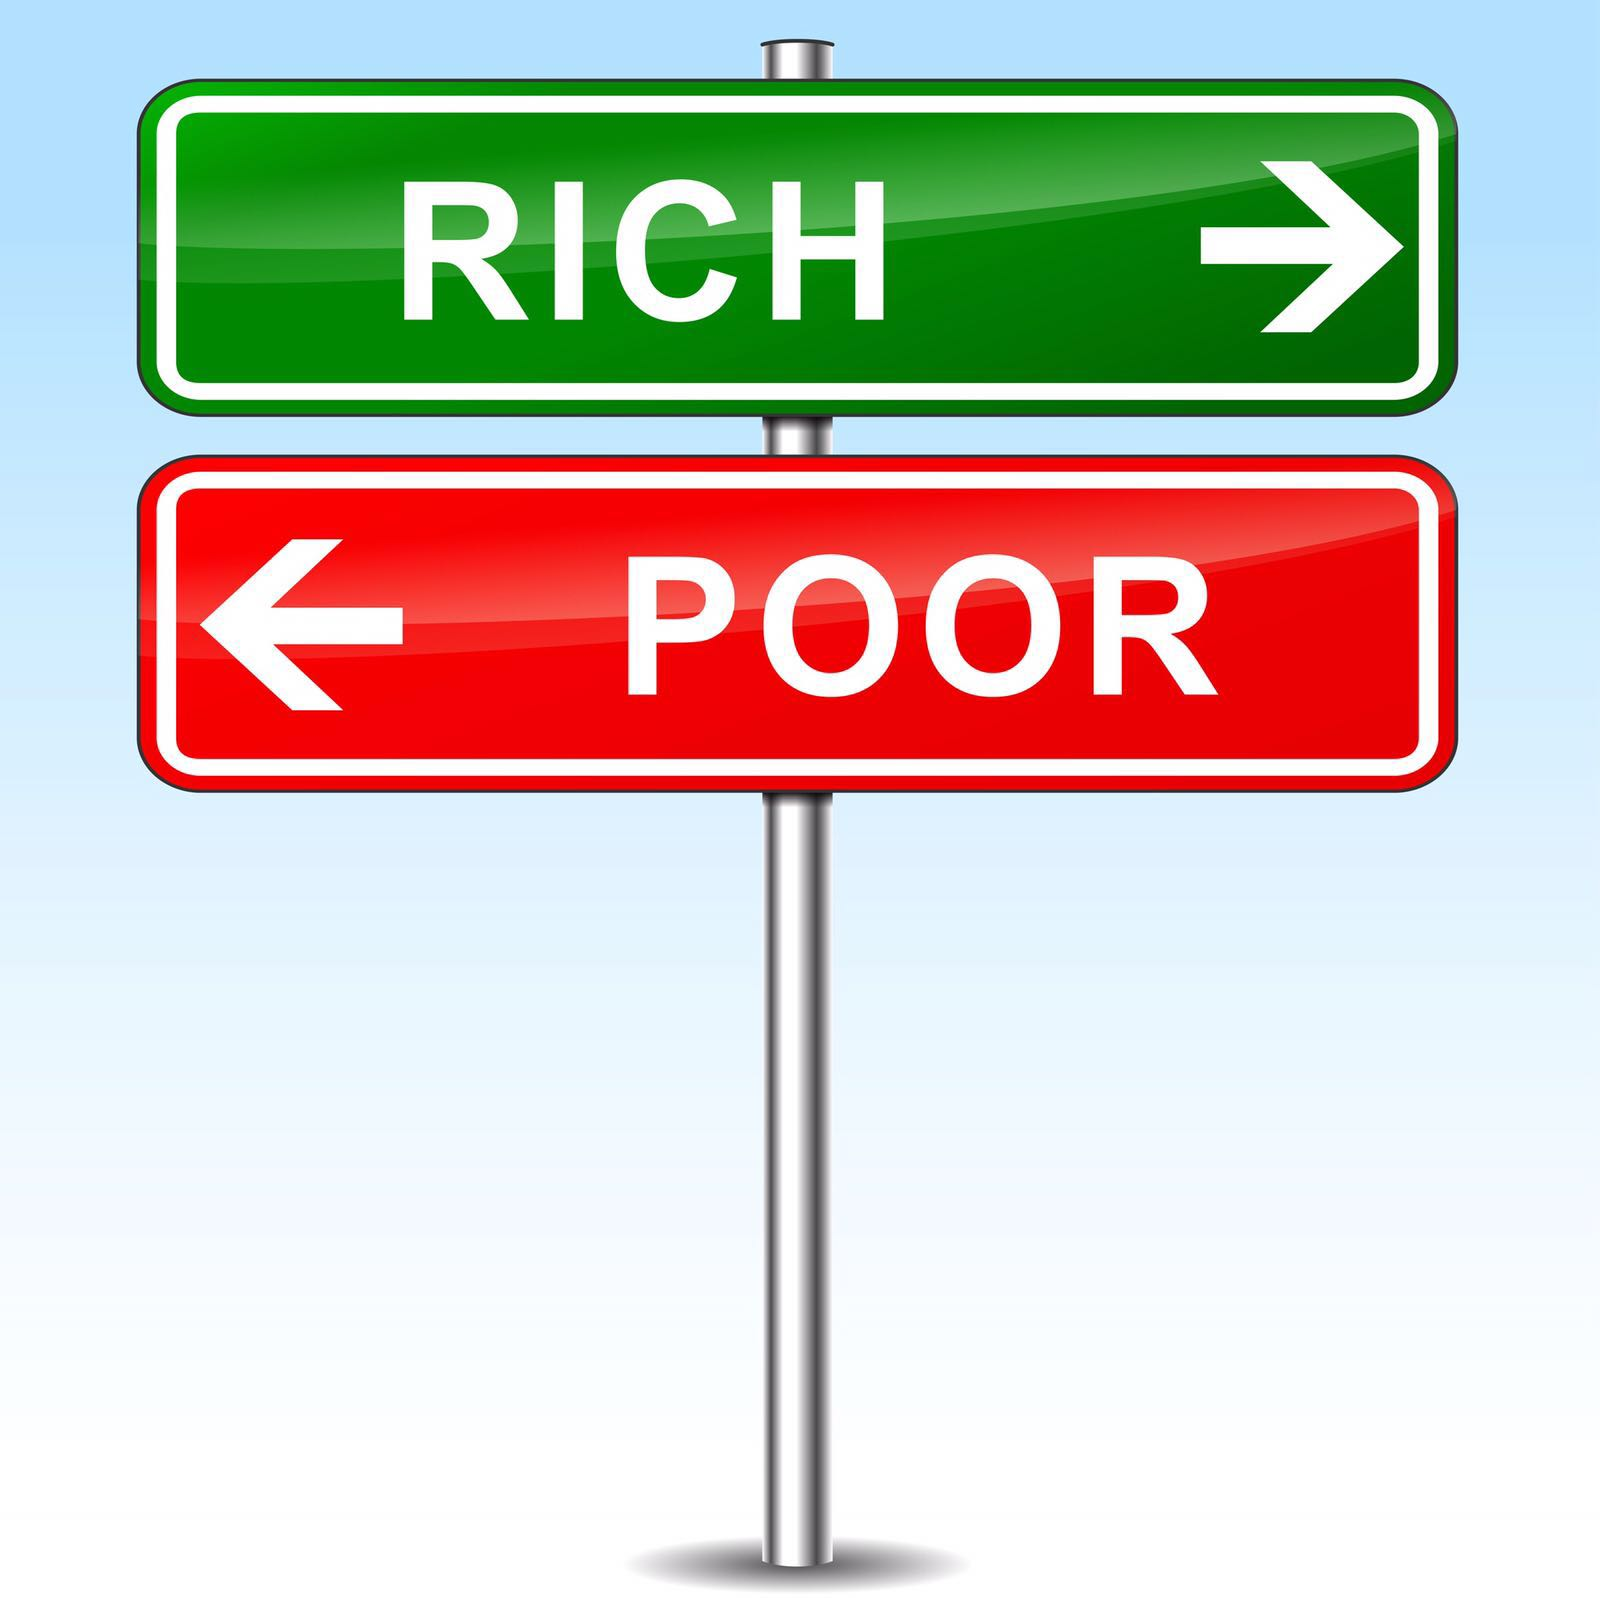 image asset - Rich people vs poor people: the main difference